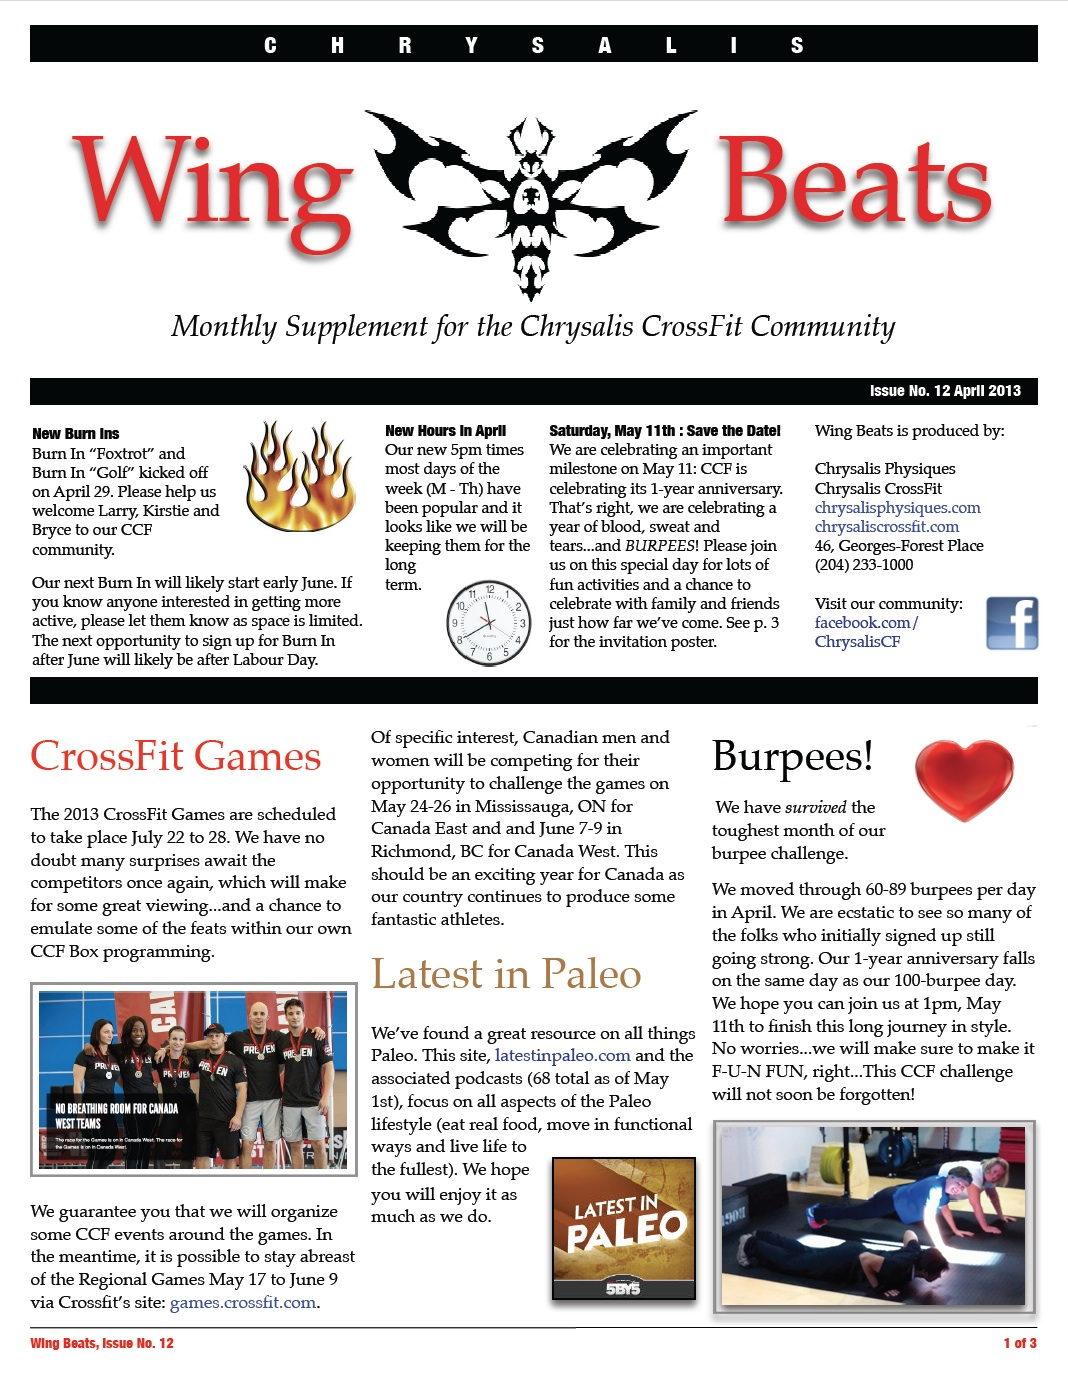 WingBeats Issue #12 - April 2013